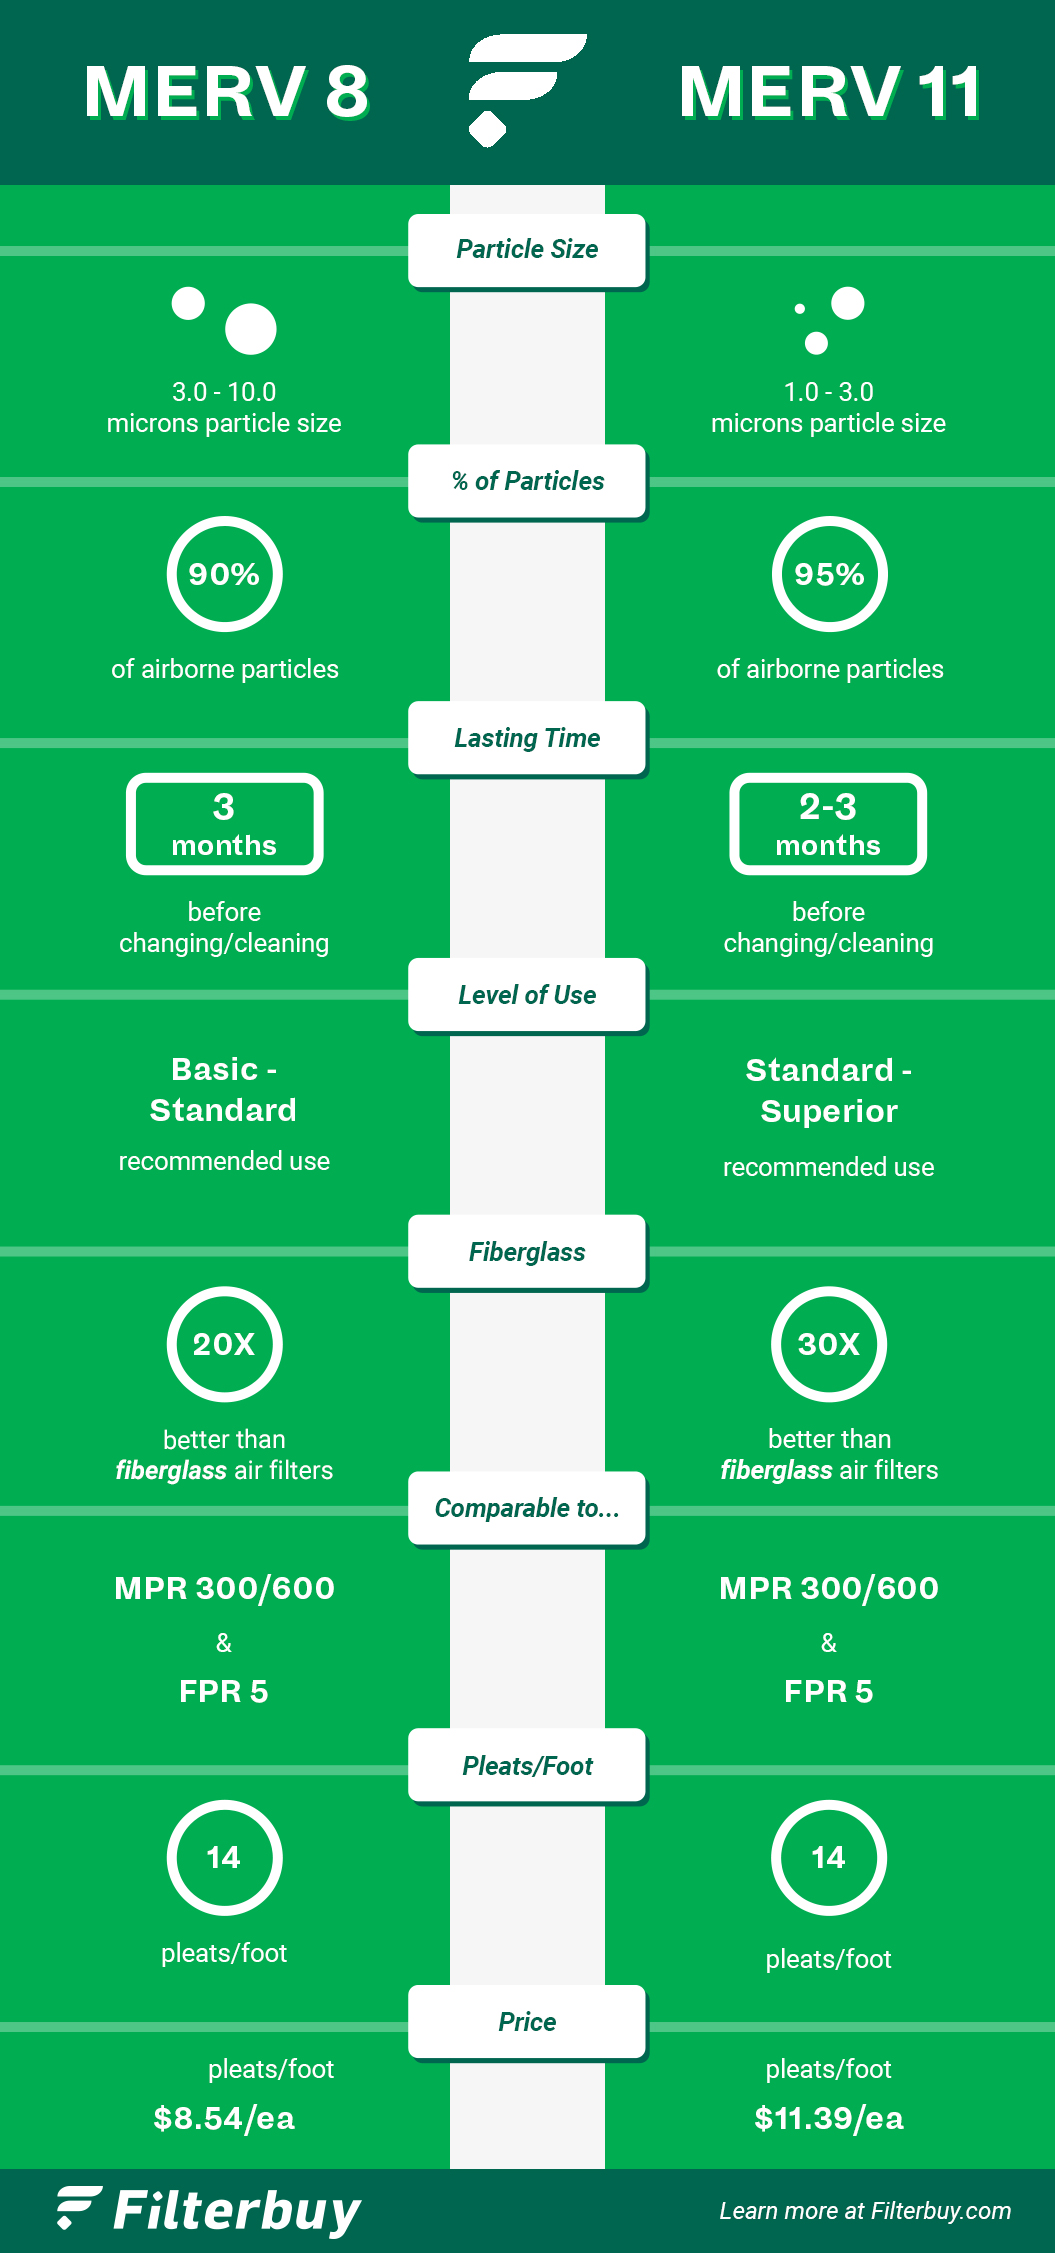 Infographic that gives side by side comparison of MERV 8 air filter performance versus MERV 11 air filter performance